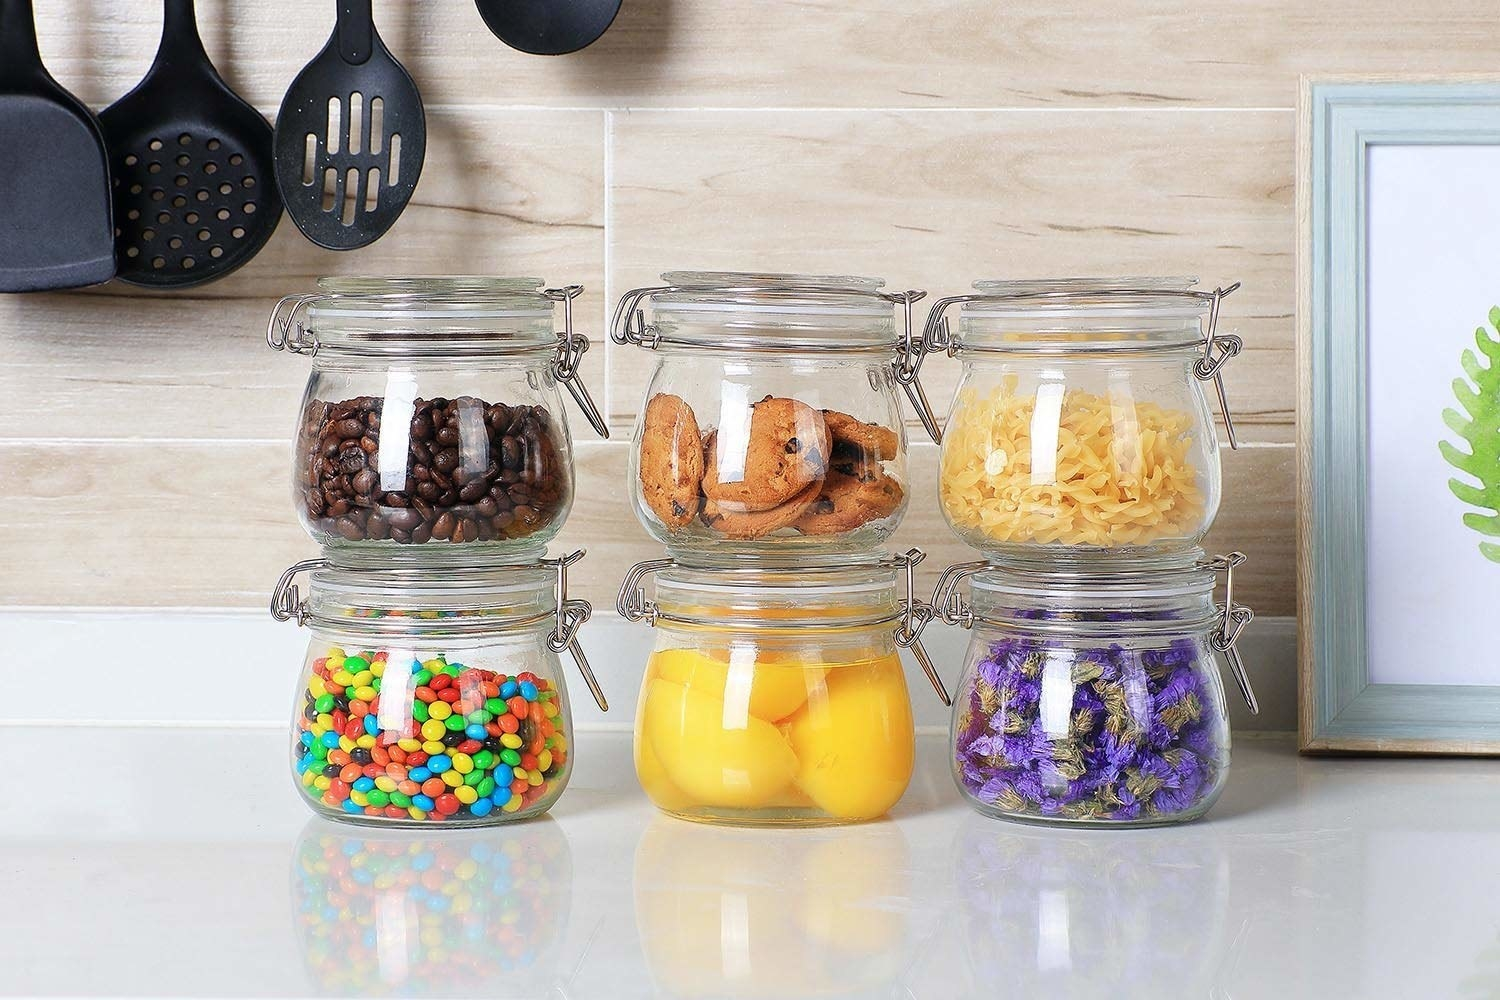 Set of jars with different foods sealed inside with the clamp top